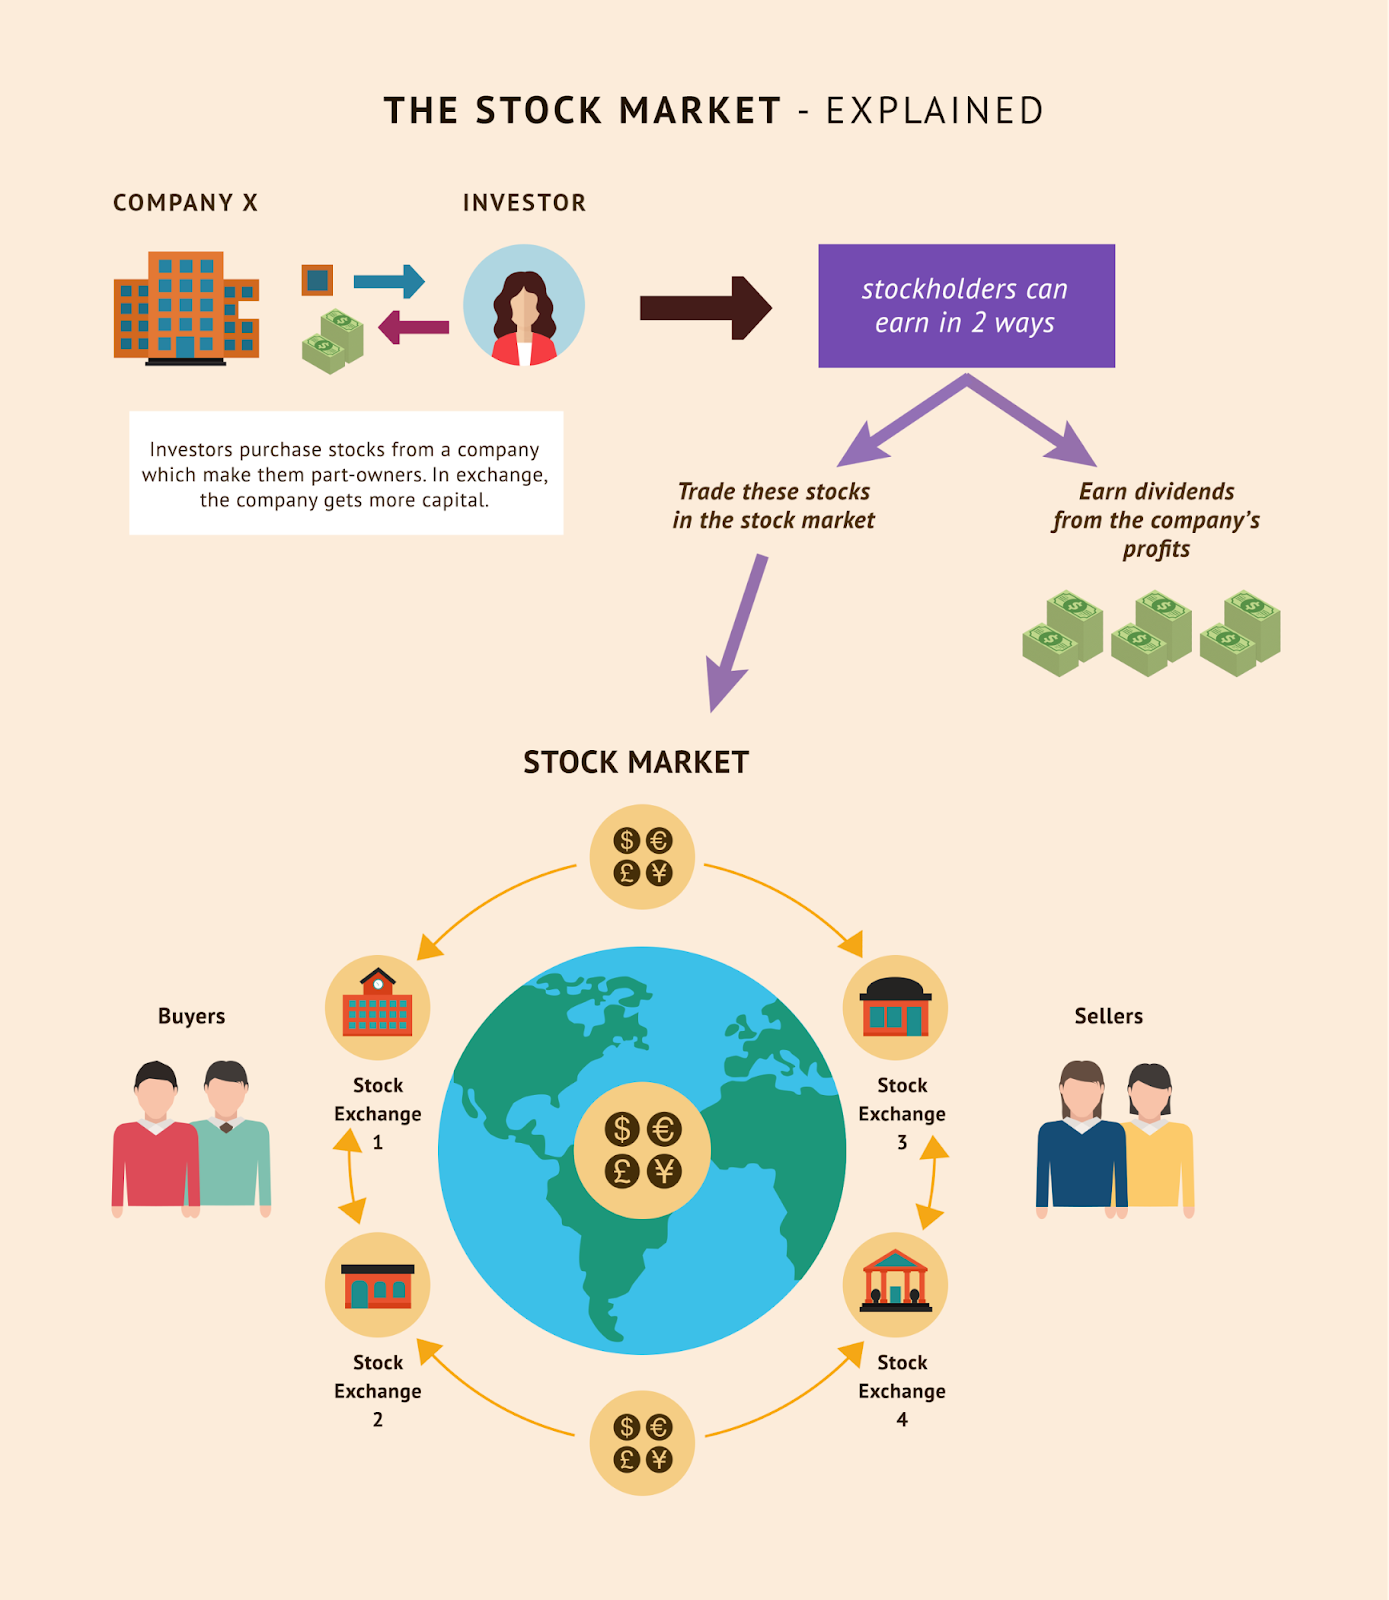 How To Make Money Off The Stock Market